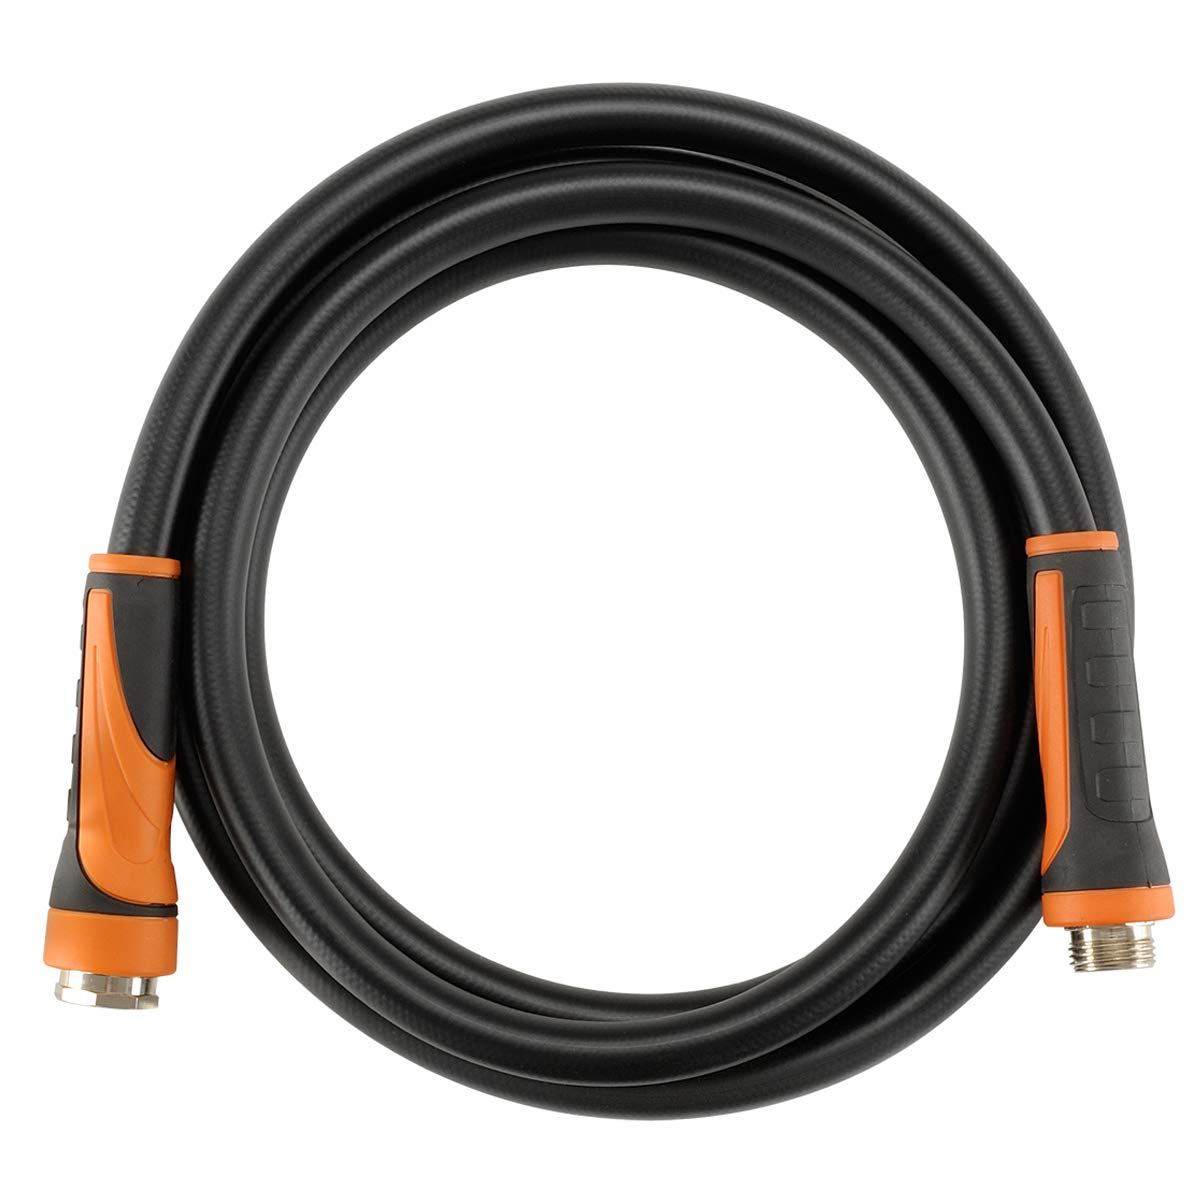 Garden Water-Hose Hybrid 5/8 in.x10FT, Heavy Duty/Lightweight/Flexible Lead-Hose by Giraffe